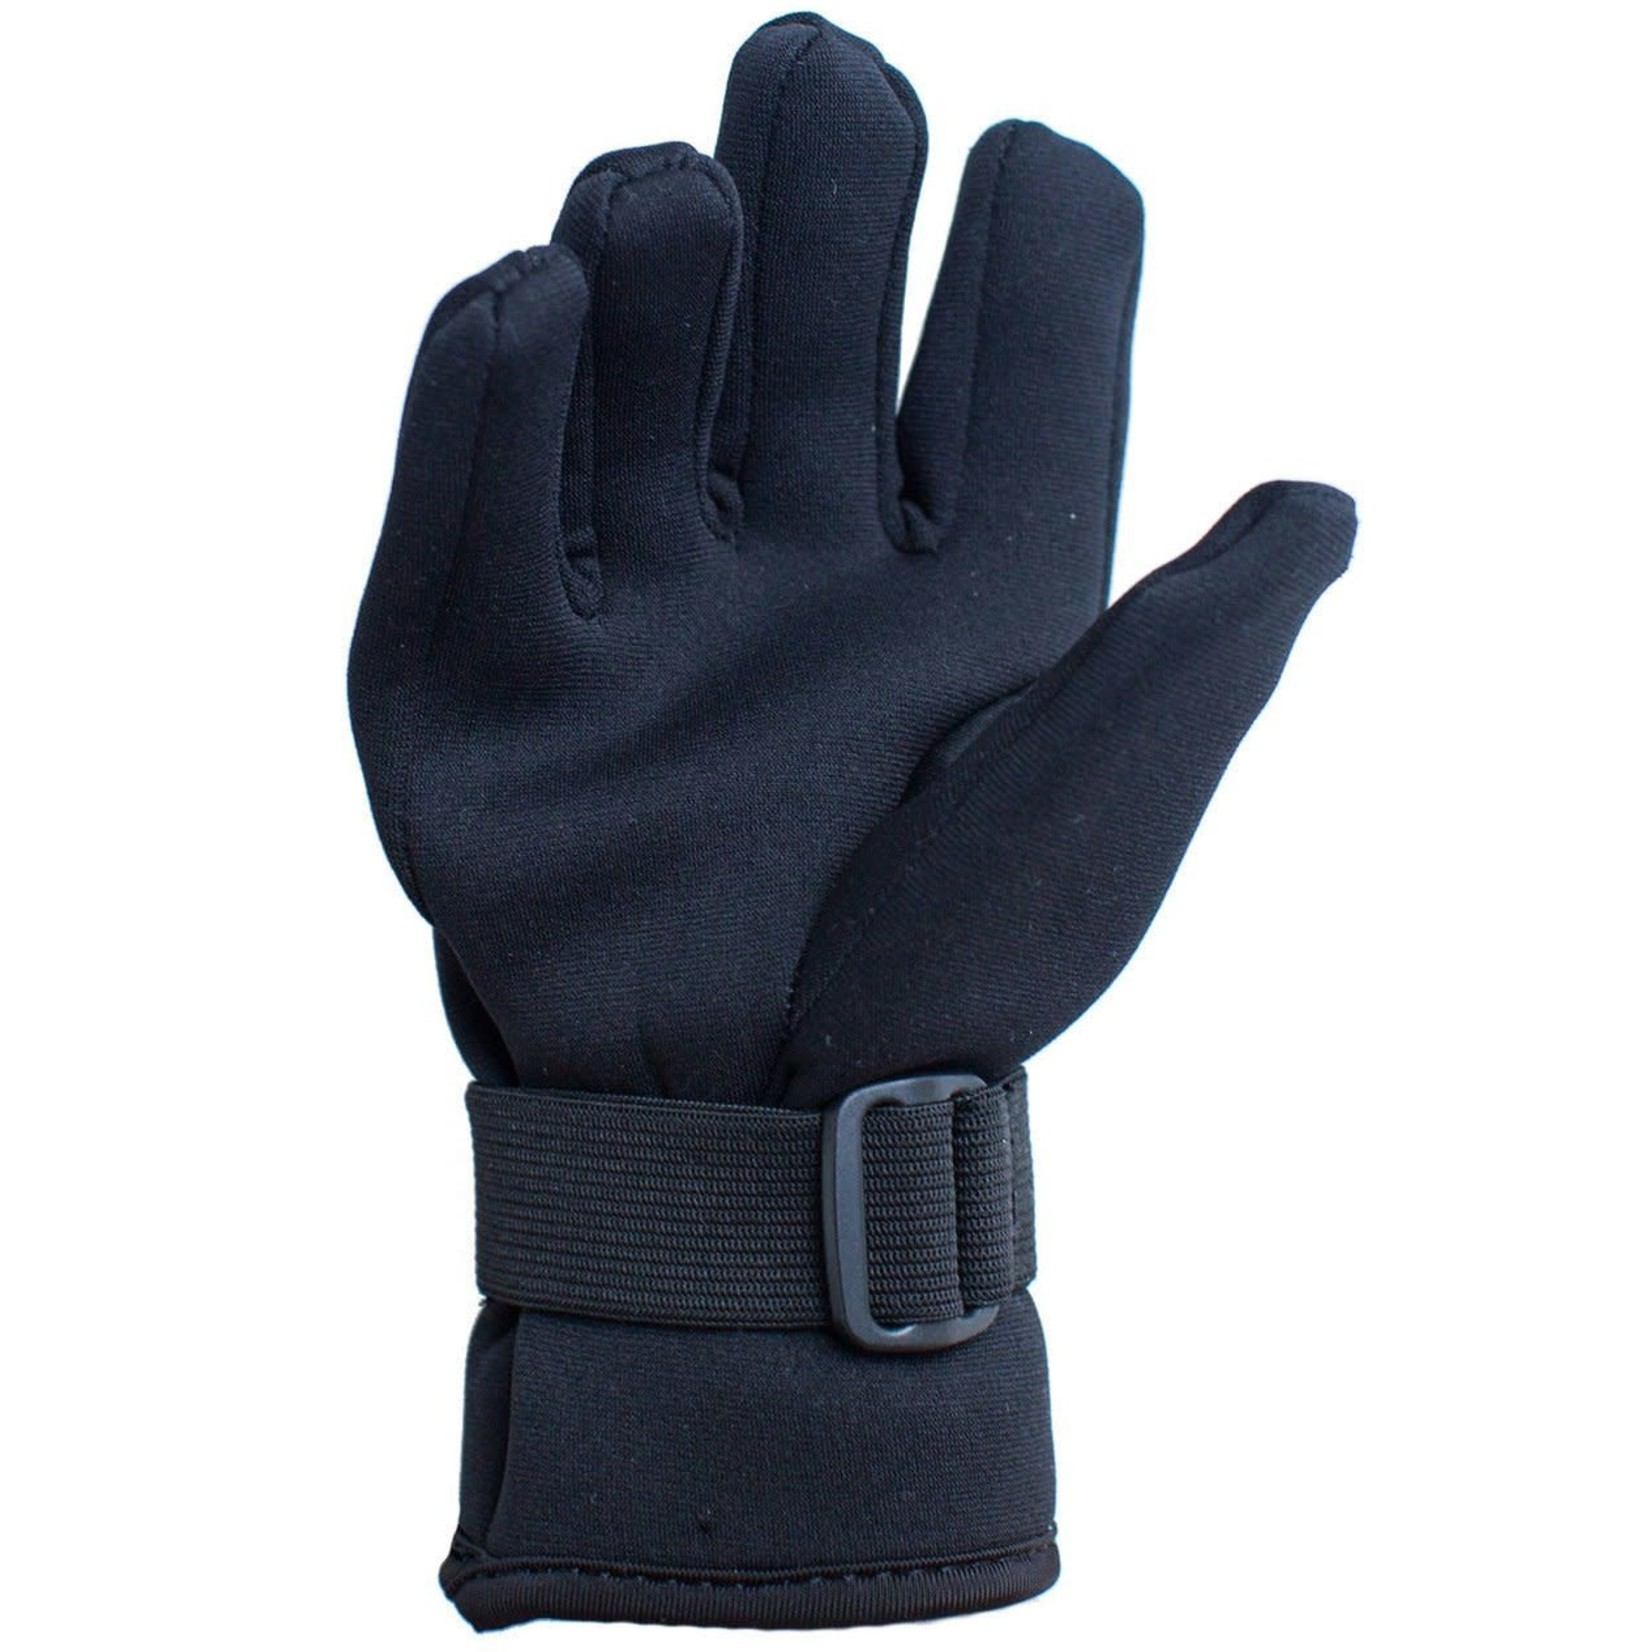 Oaki Wear Oaki Neoprene Gloves